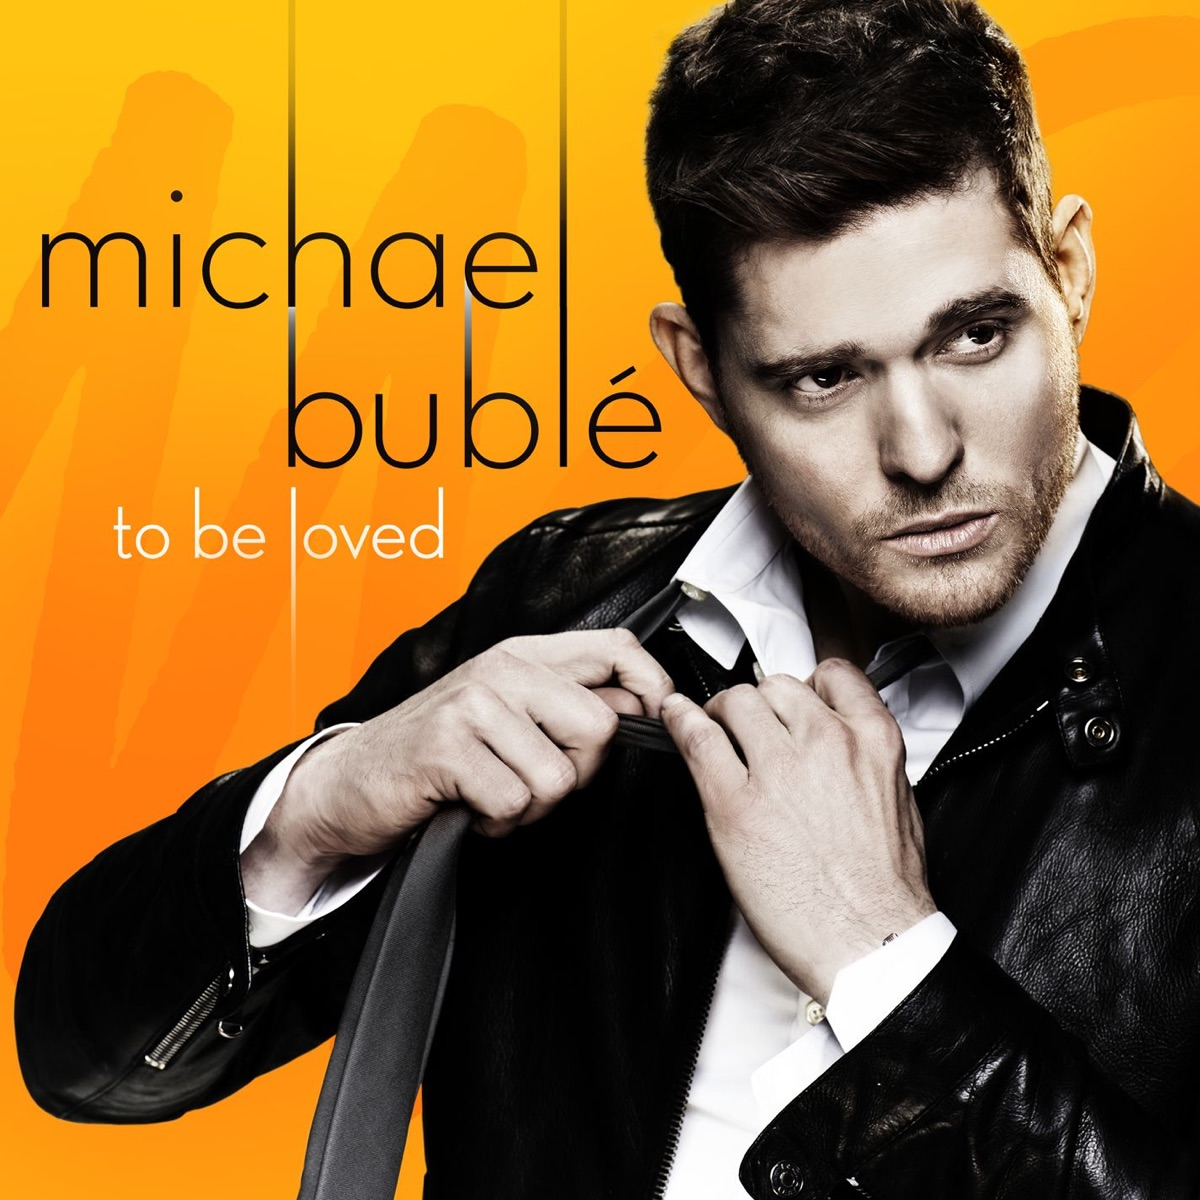 To Be Loved Michael Bublé CD cover